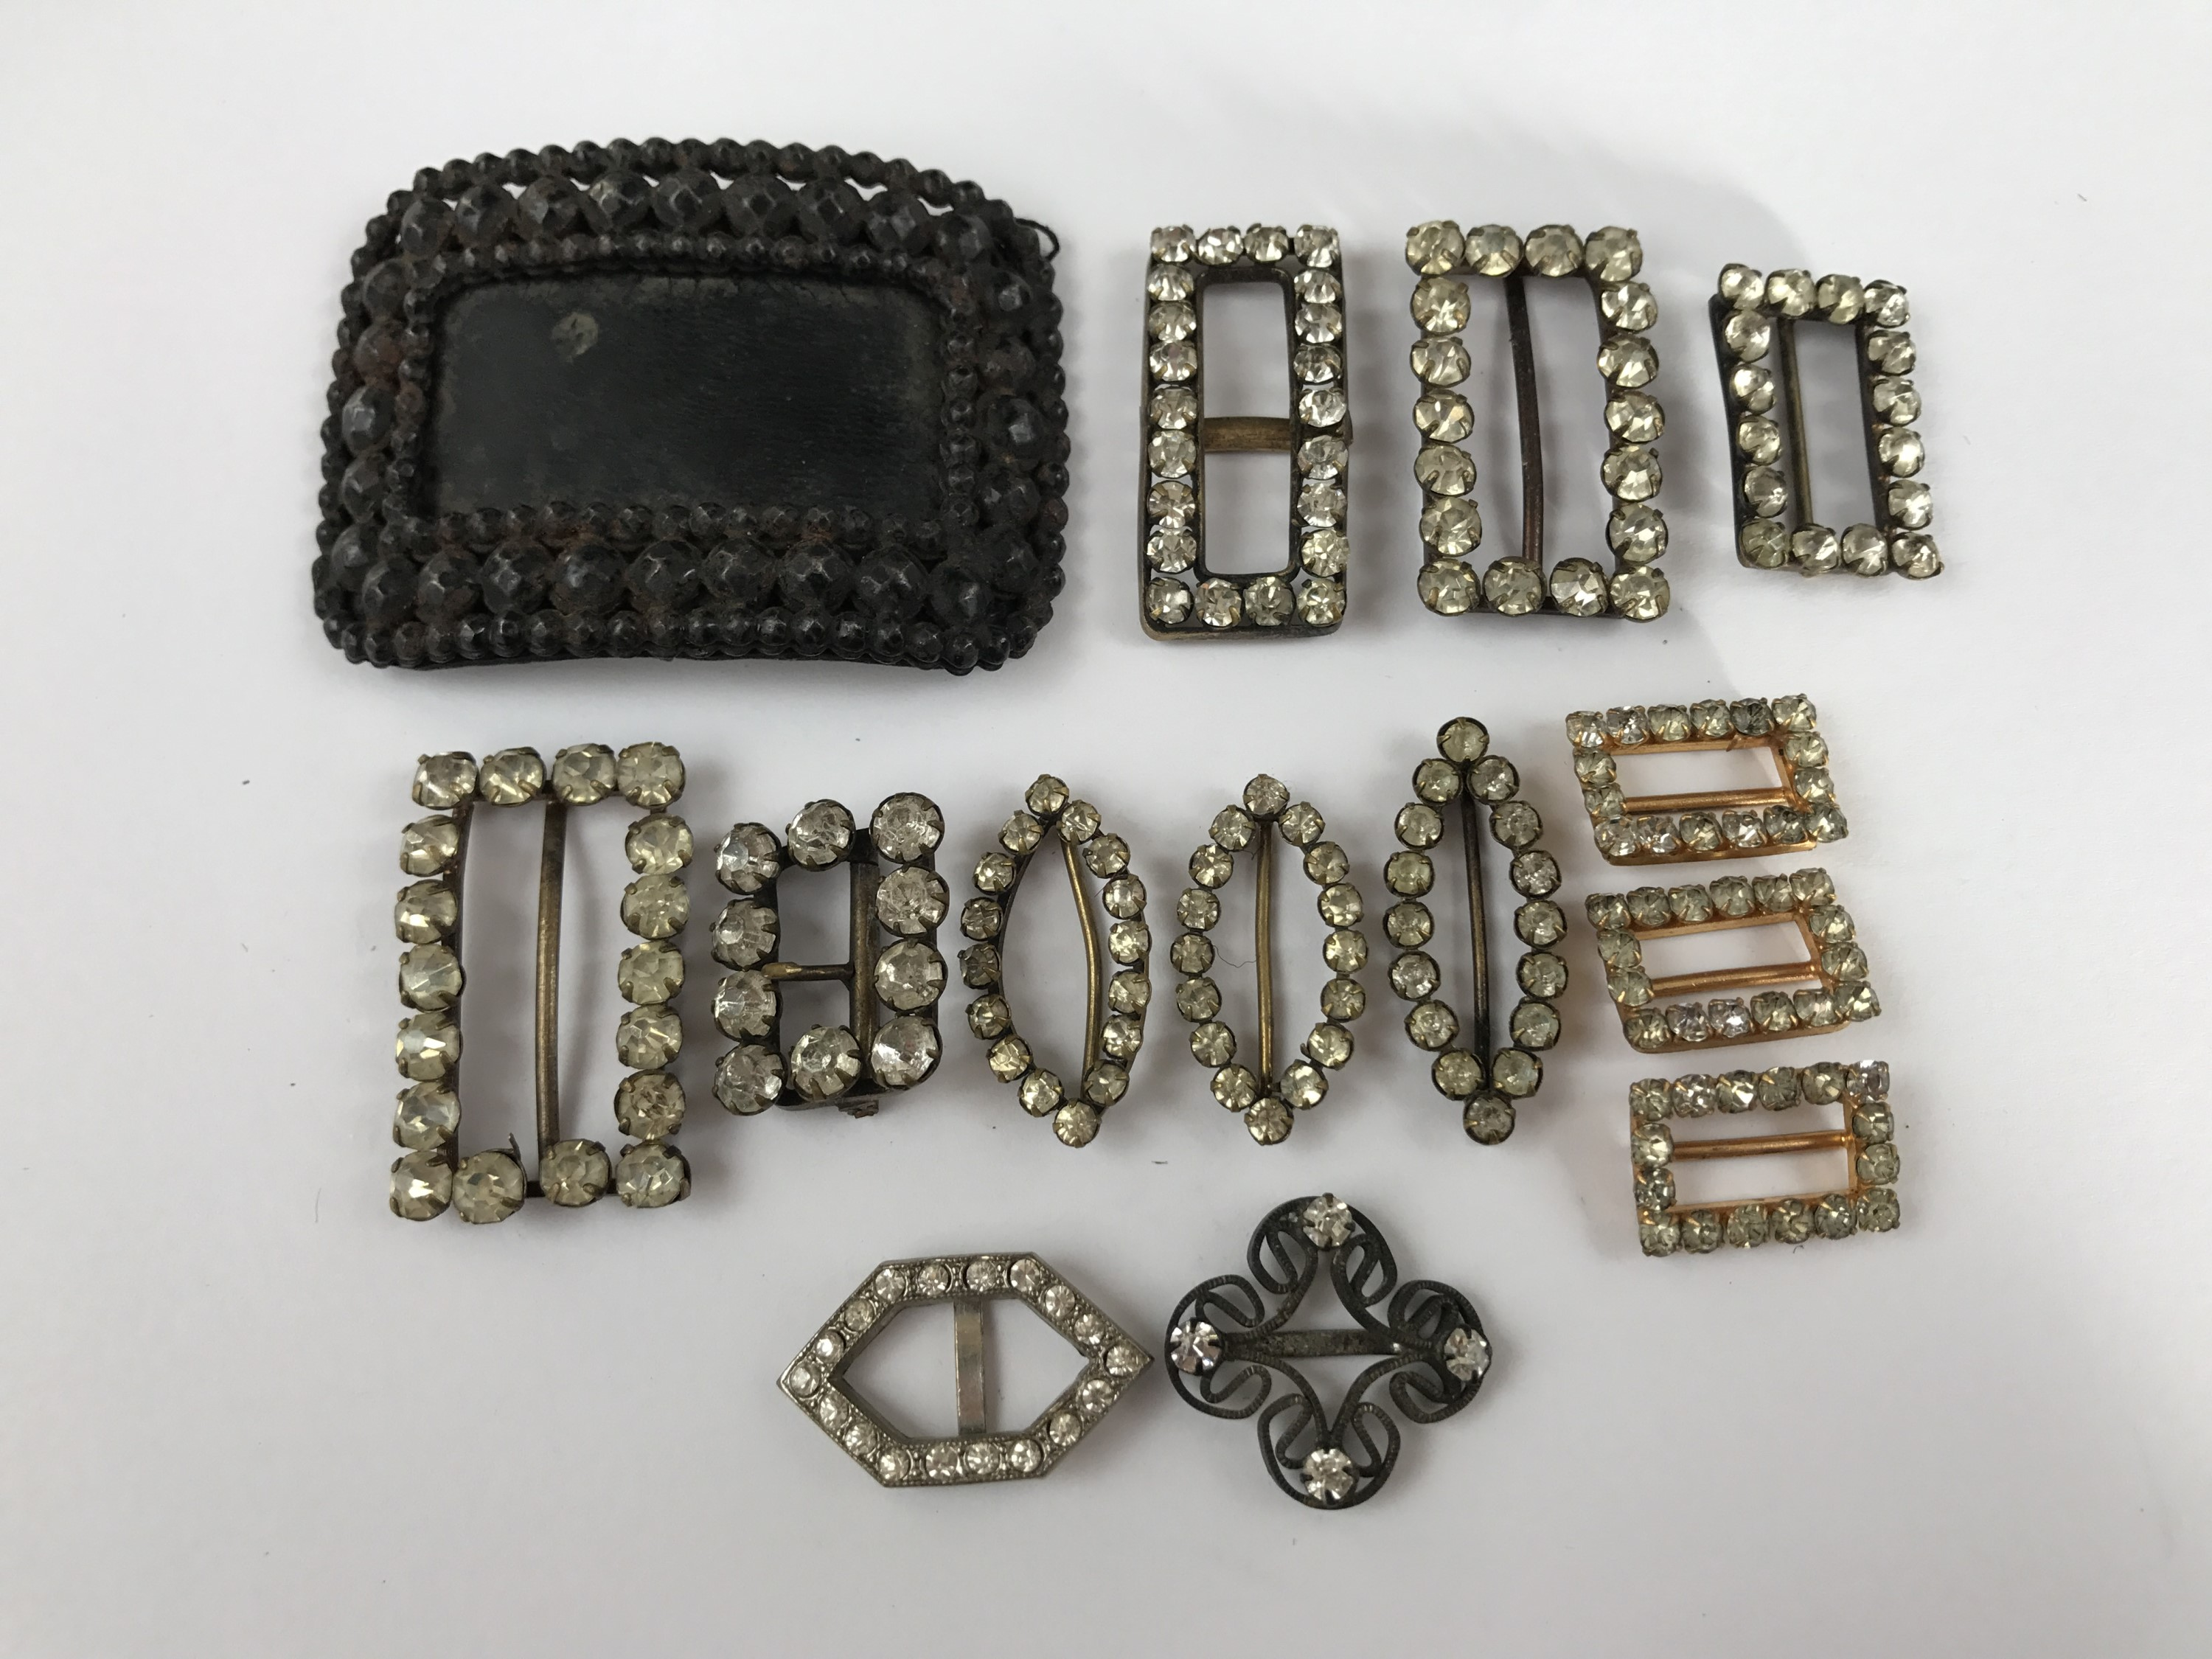 Lot 20 - 19th Century and later shoe and dress buckles